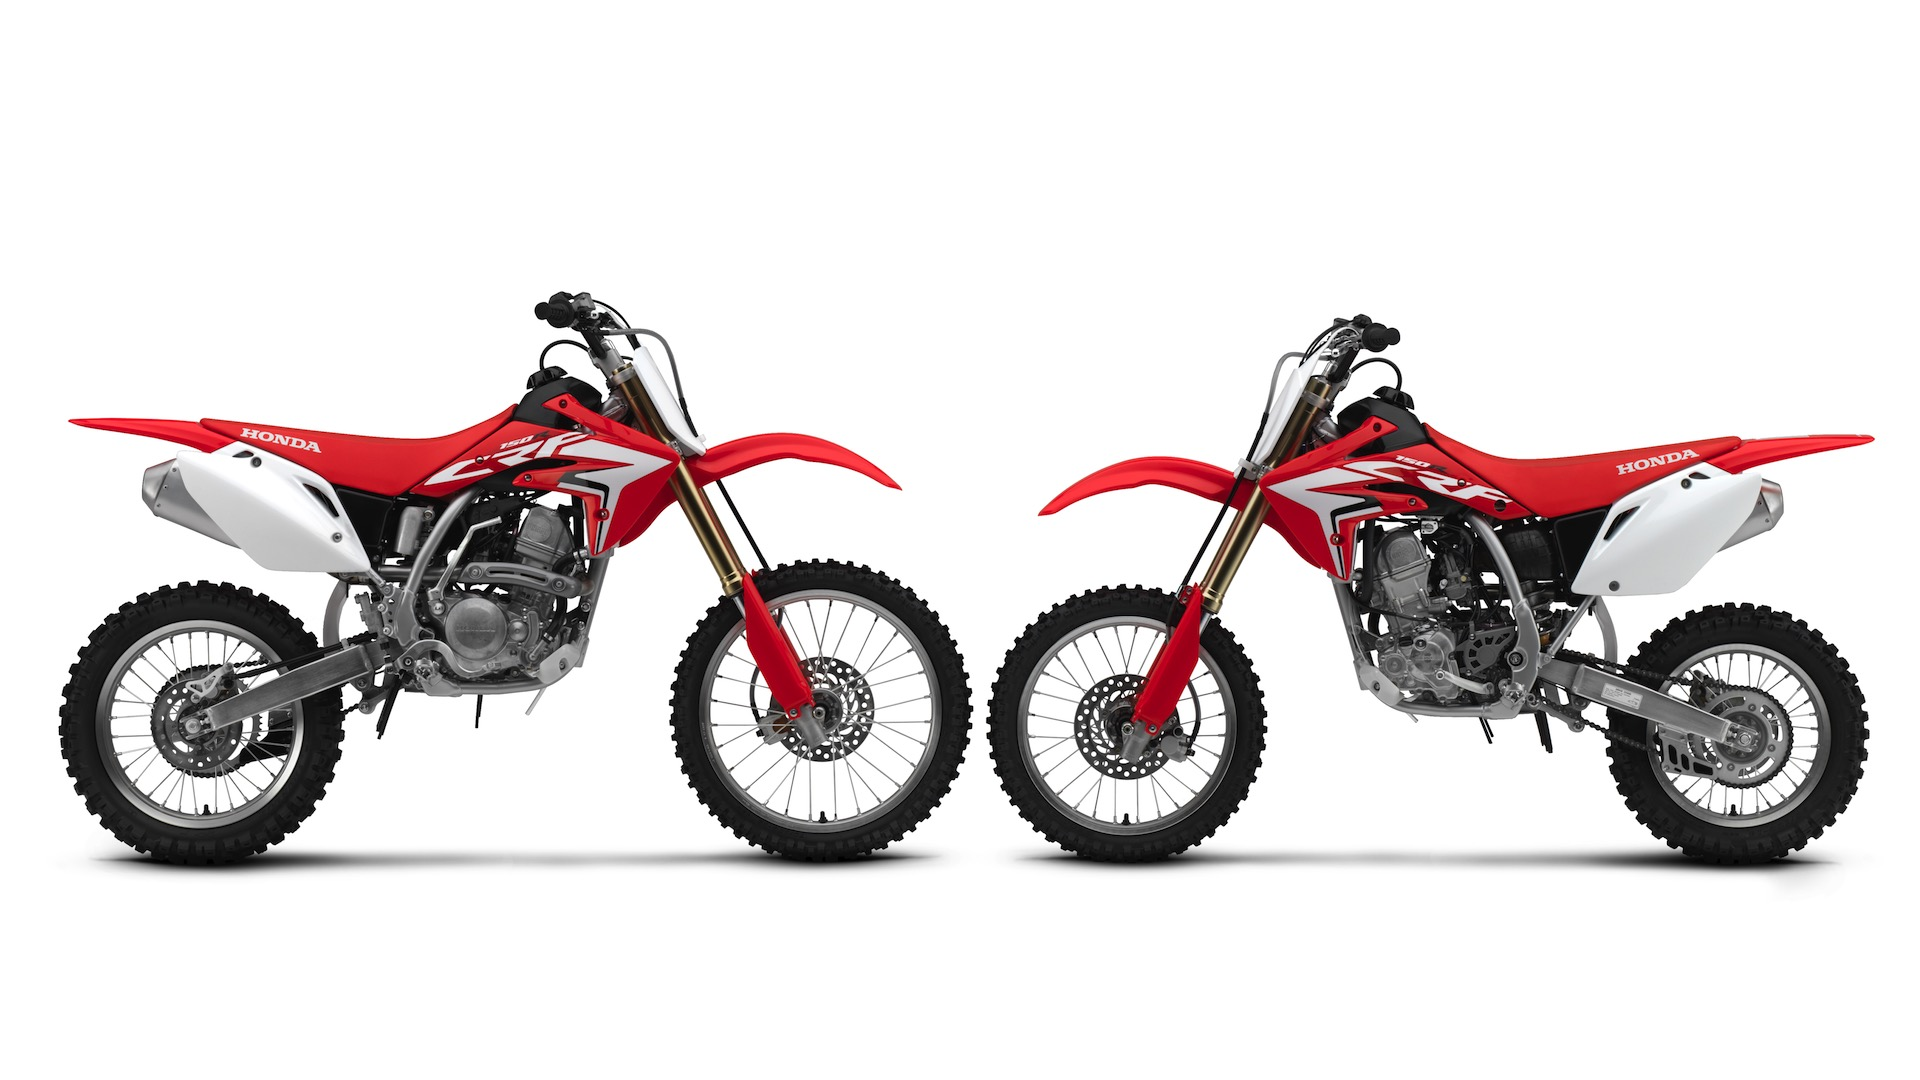 2019 Honda CRF Motocross Lineup First Look | Fast Facts On Five Models